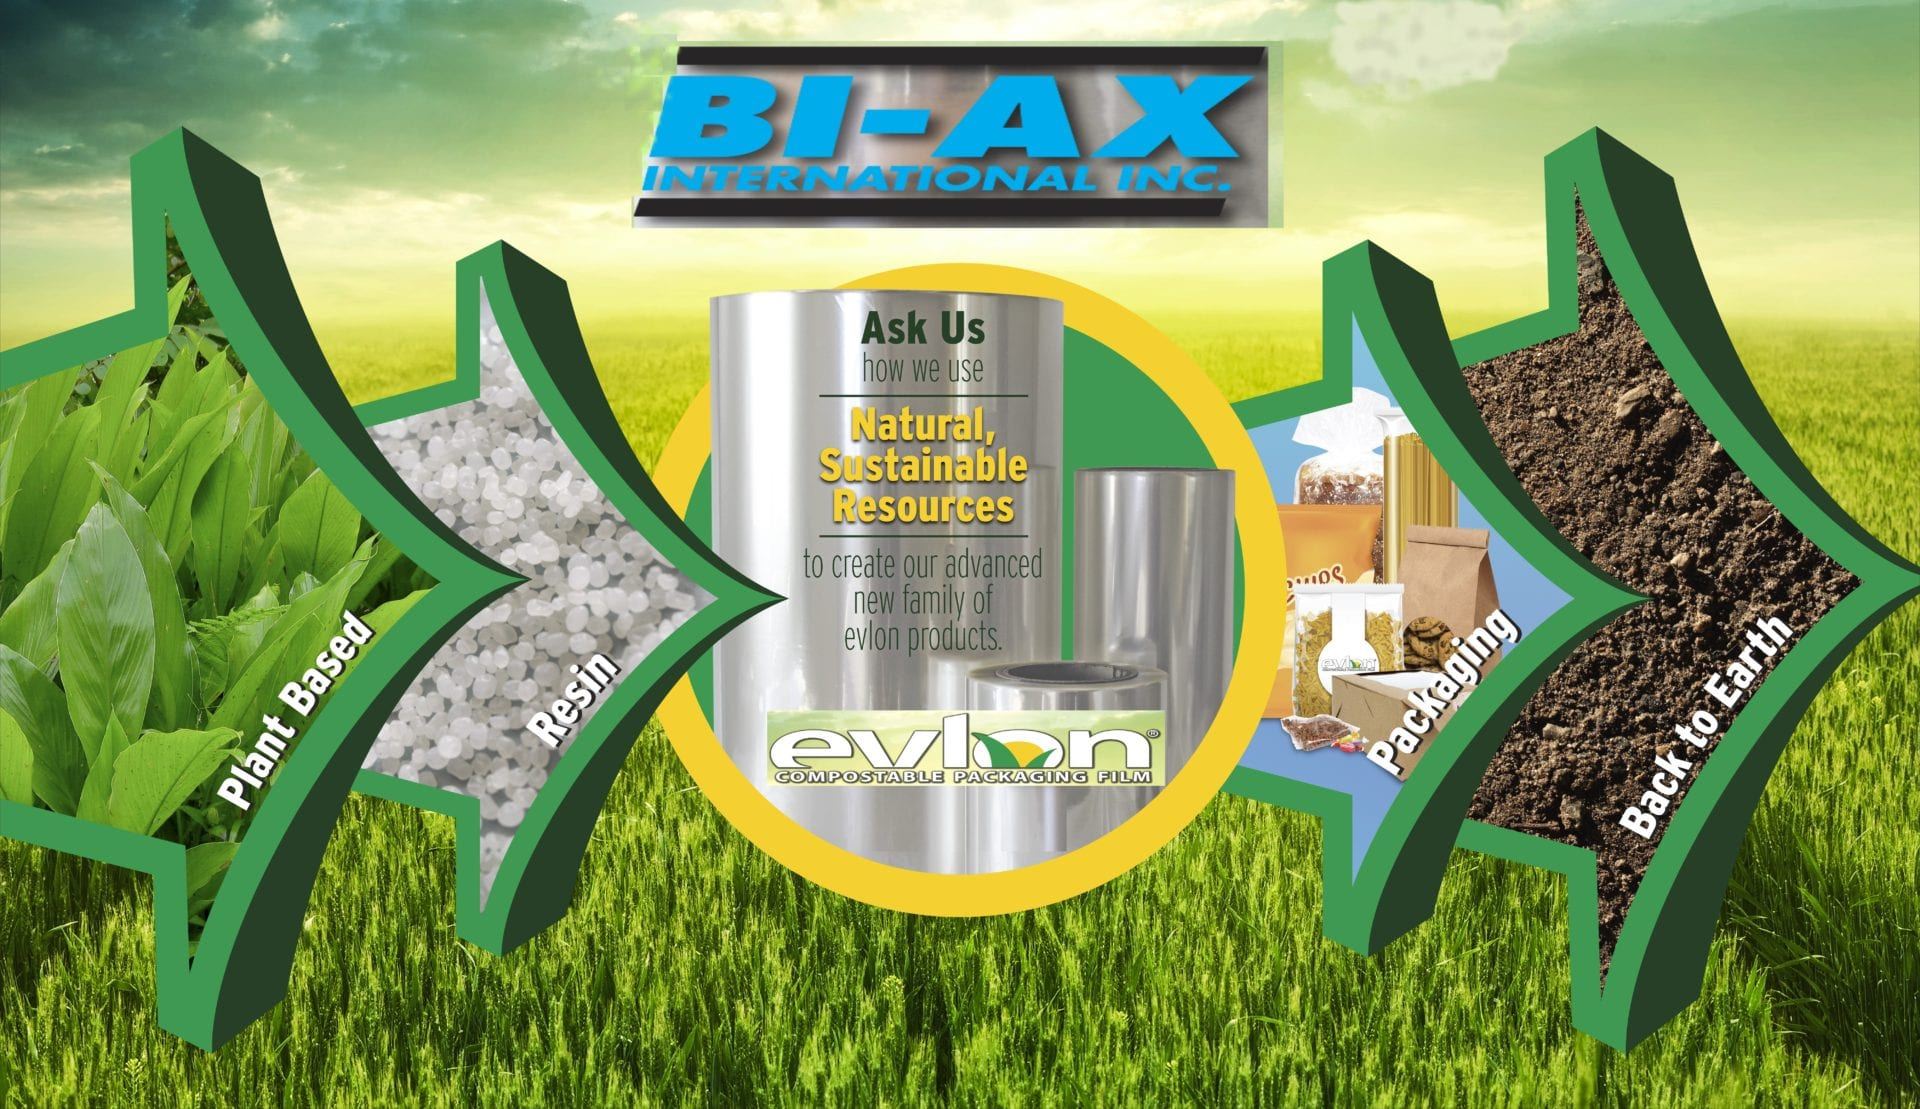 Evlon Compostable Film made from renewable resources